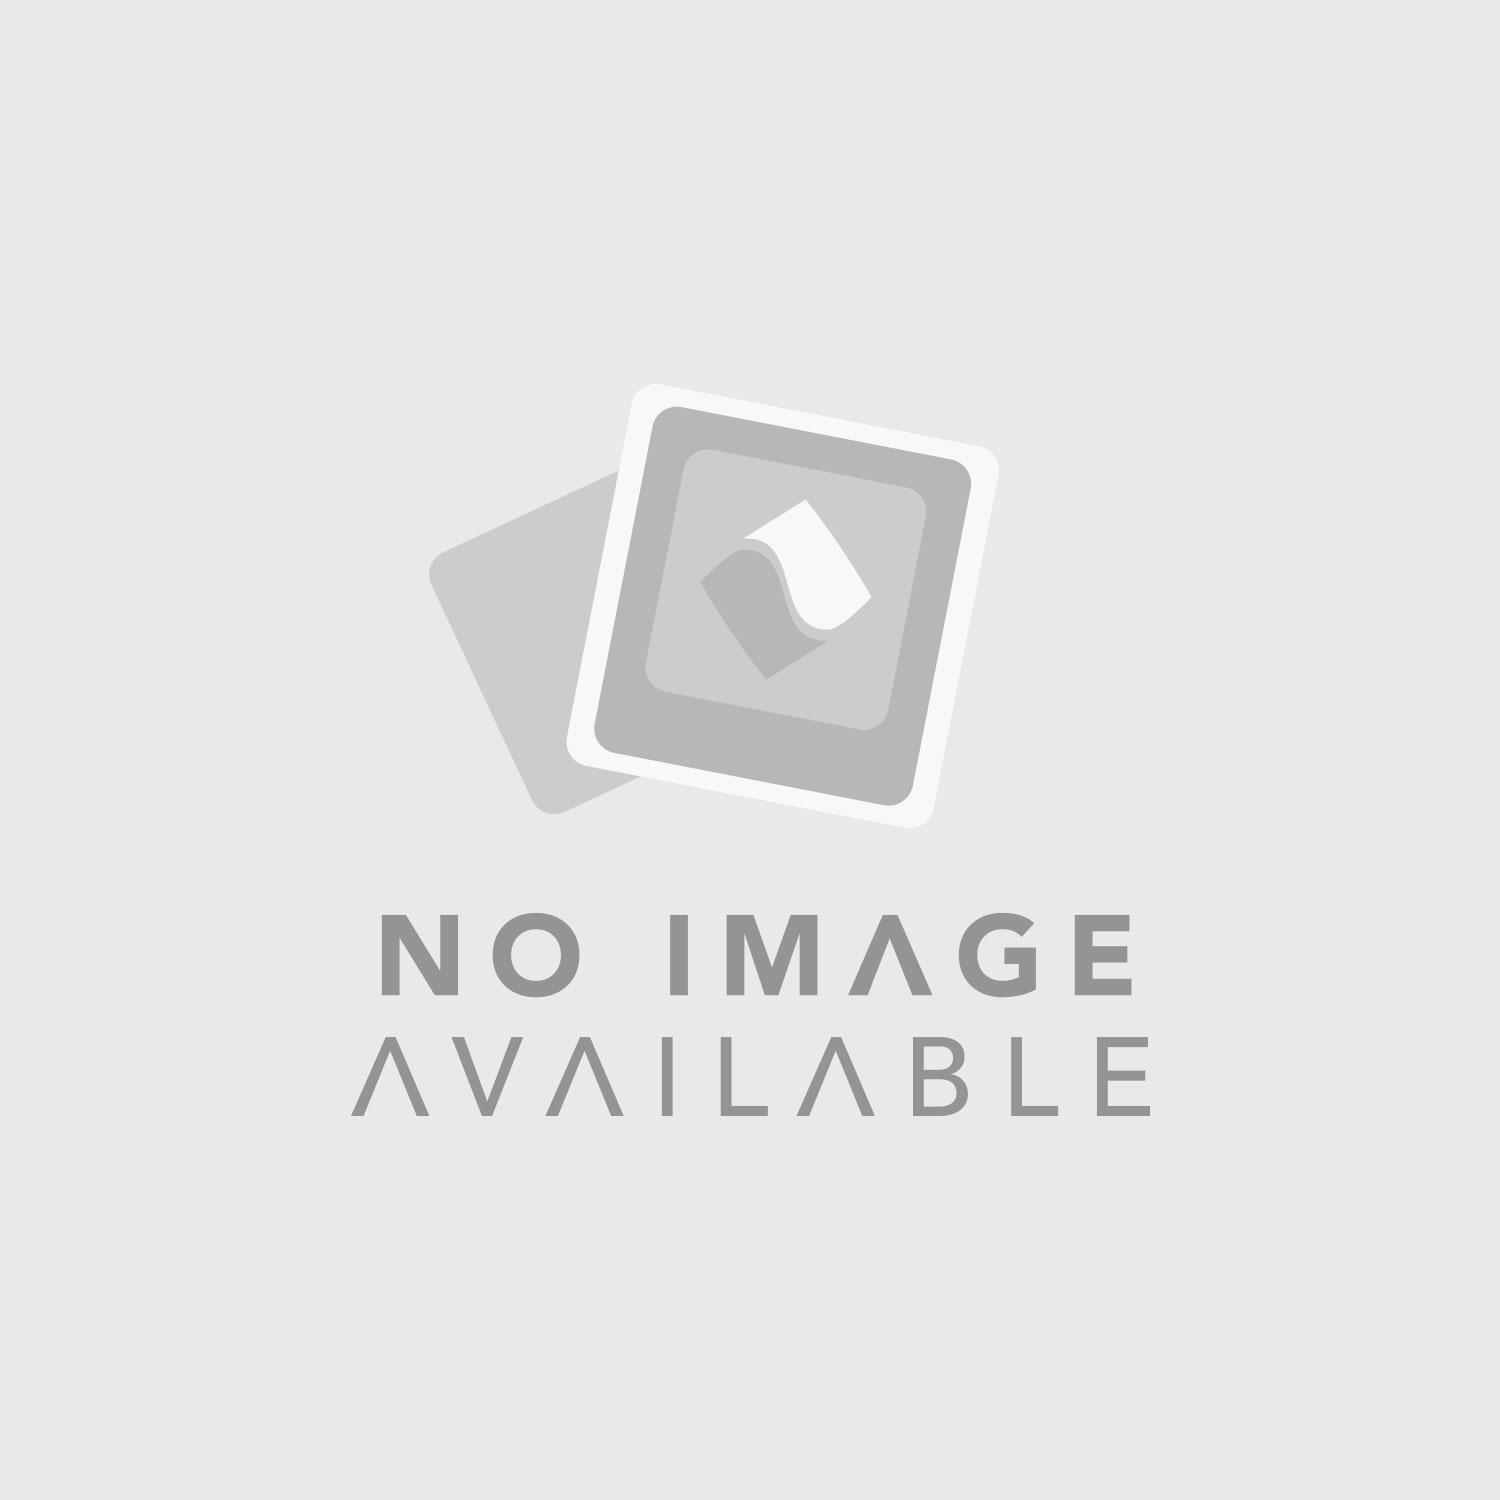 Avid Pro Tools 1-Year Subscription Upgrade/Reinstatement (Boxed, Academic Institution)